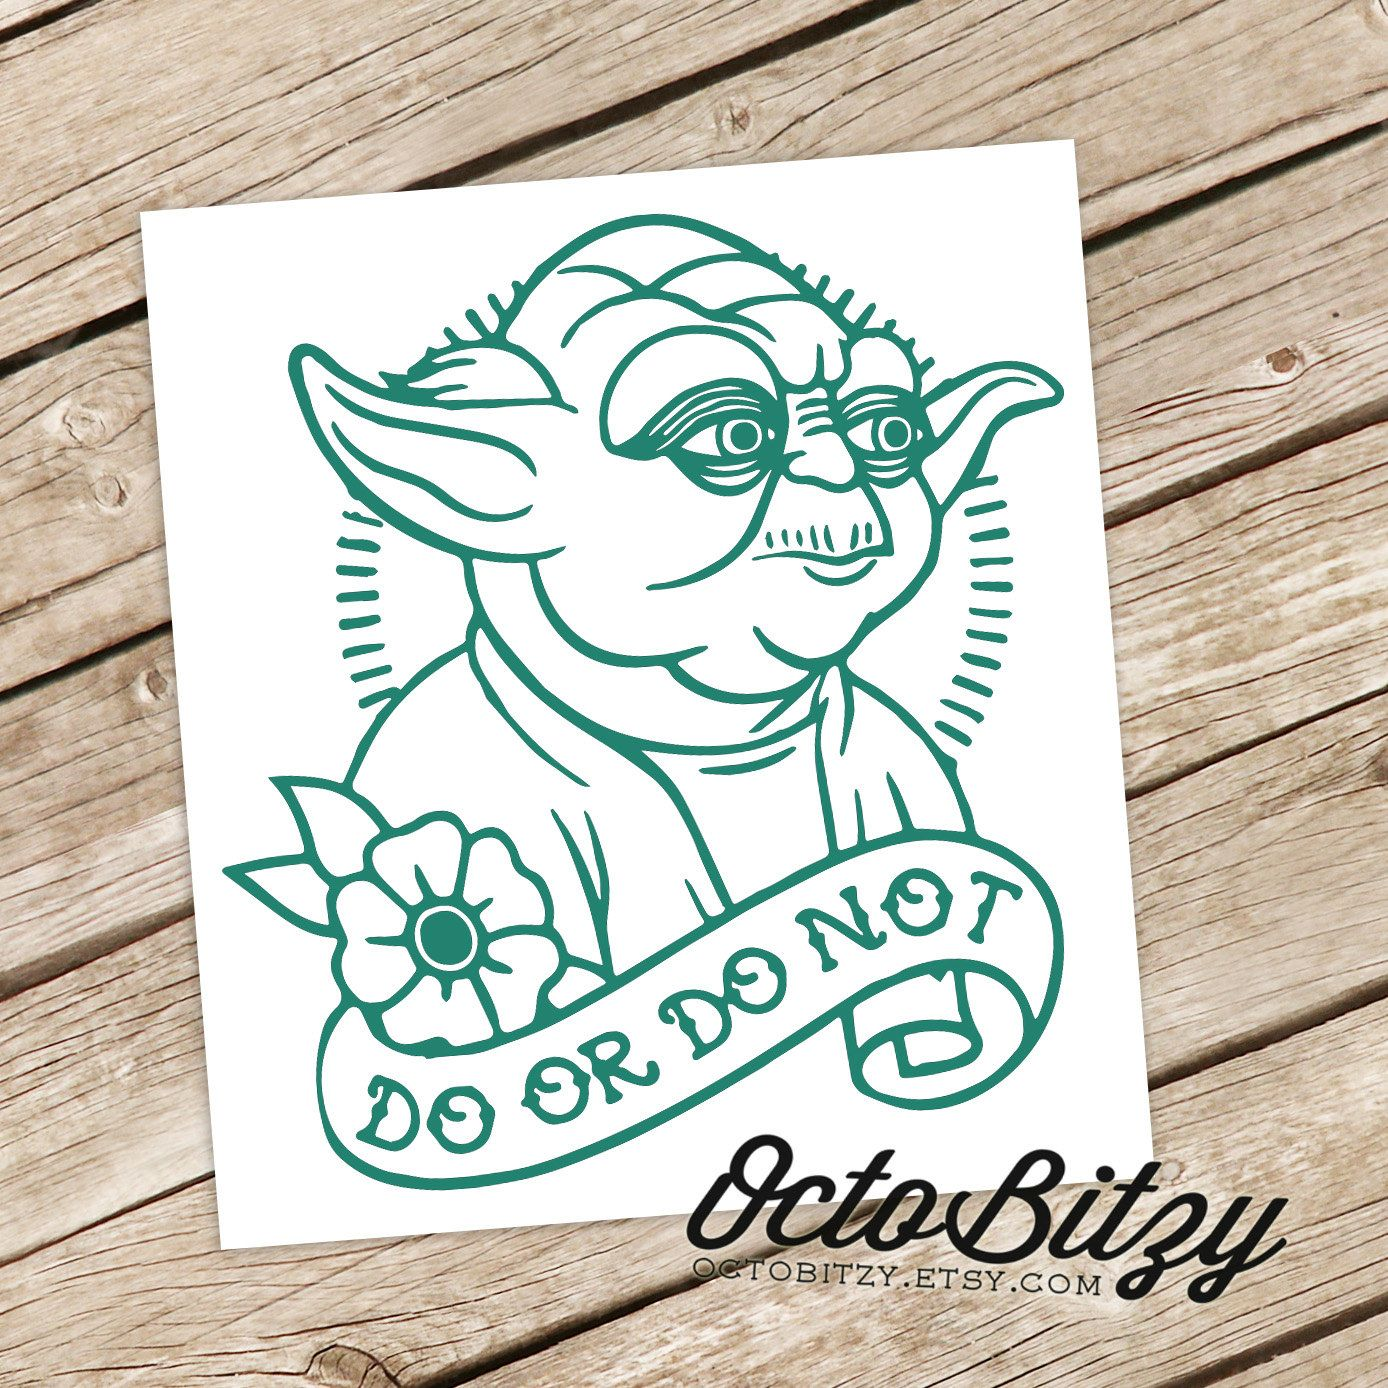 Yoda Do or Do Not Tattoo Style Decal Sticker von OctoBitzy auf Etsy